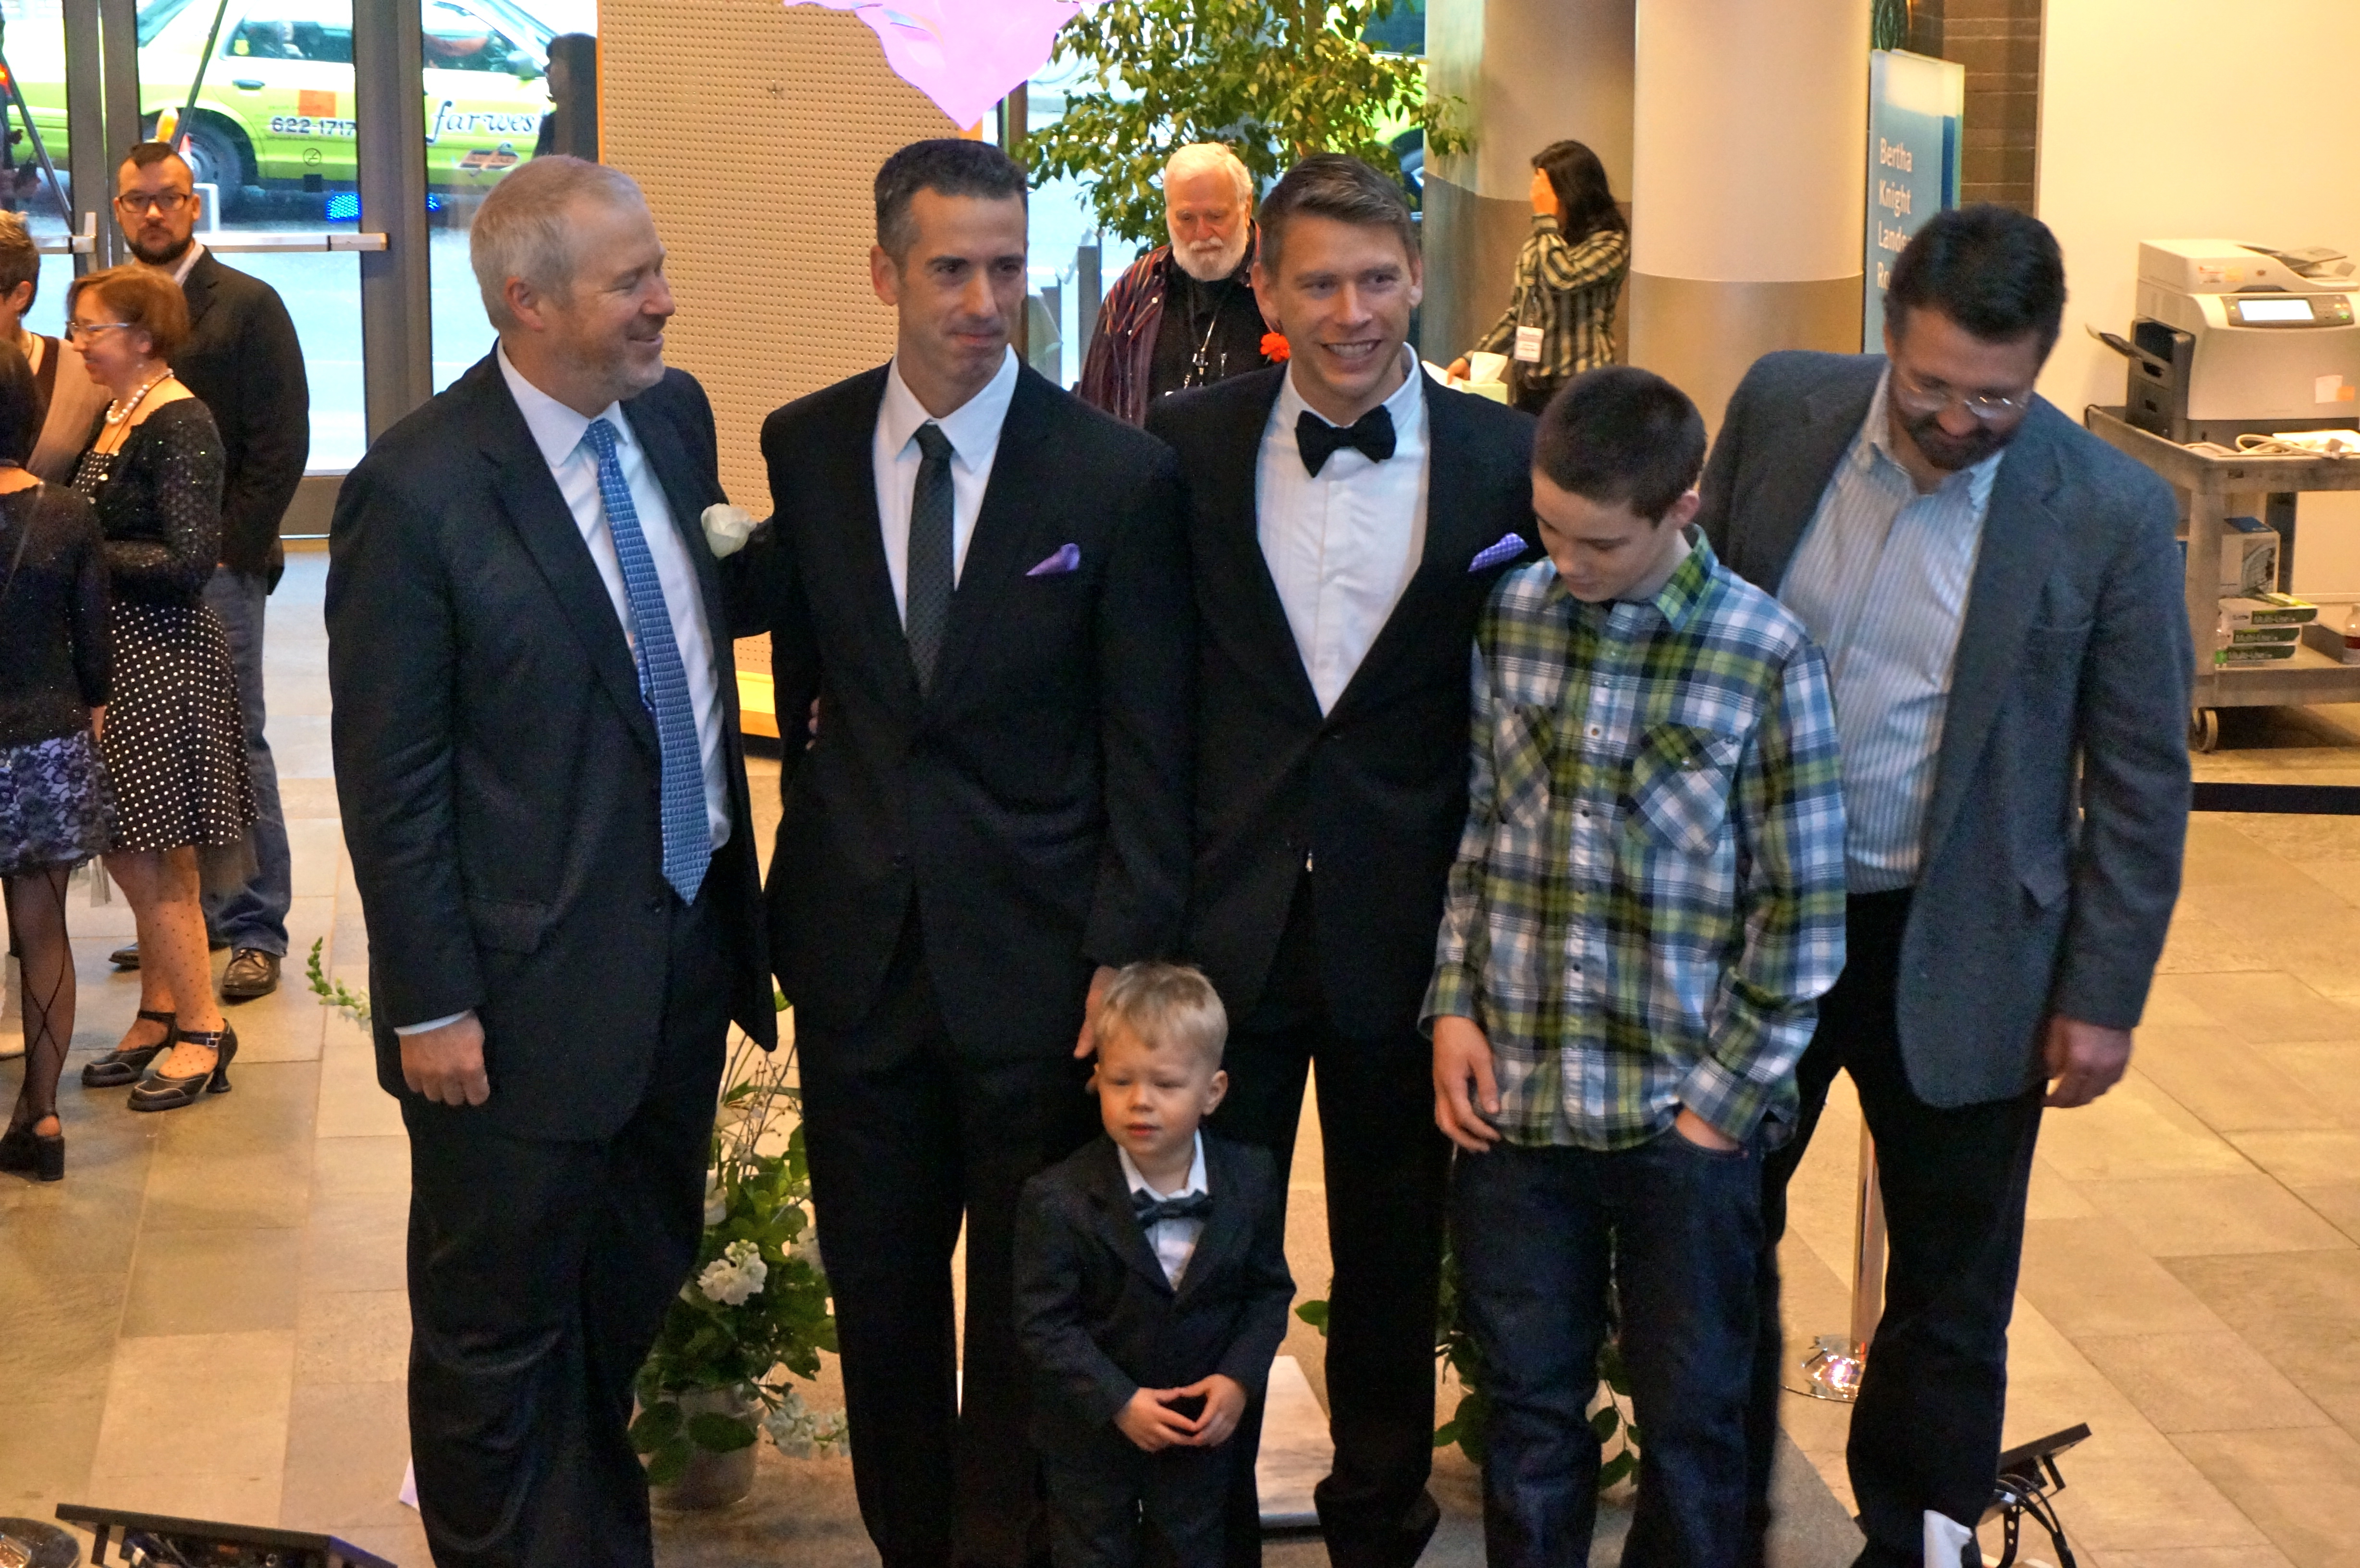 Clip Free Gay Sample Sex Dan Savage and Terry Miller u0026 39 s wedding at Seattle City Hall attended by Mayor Mike McGinn on December 9 2012 the first day of same sex marriage in